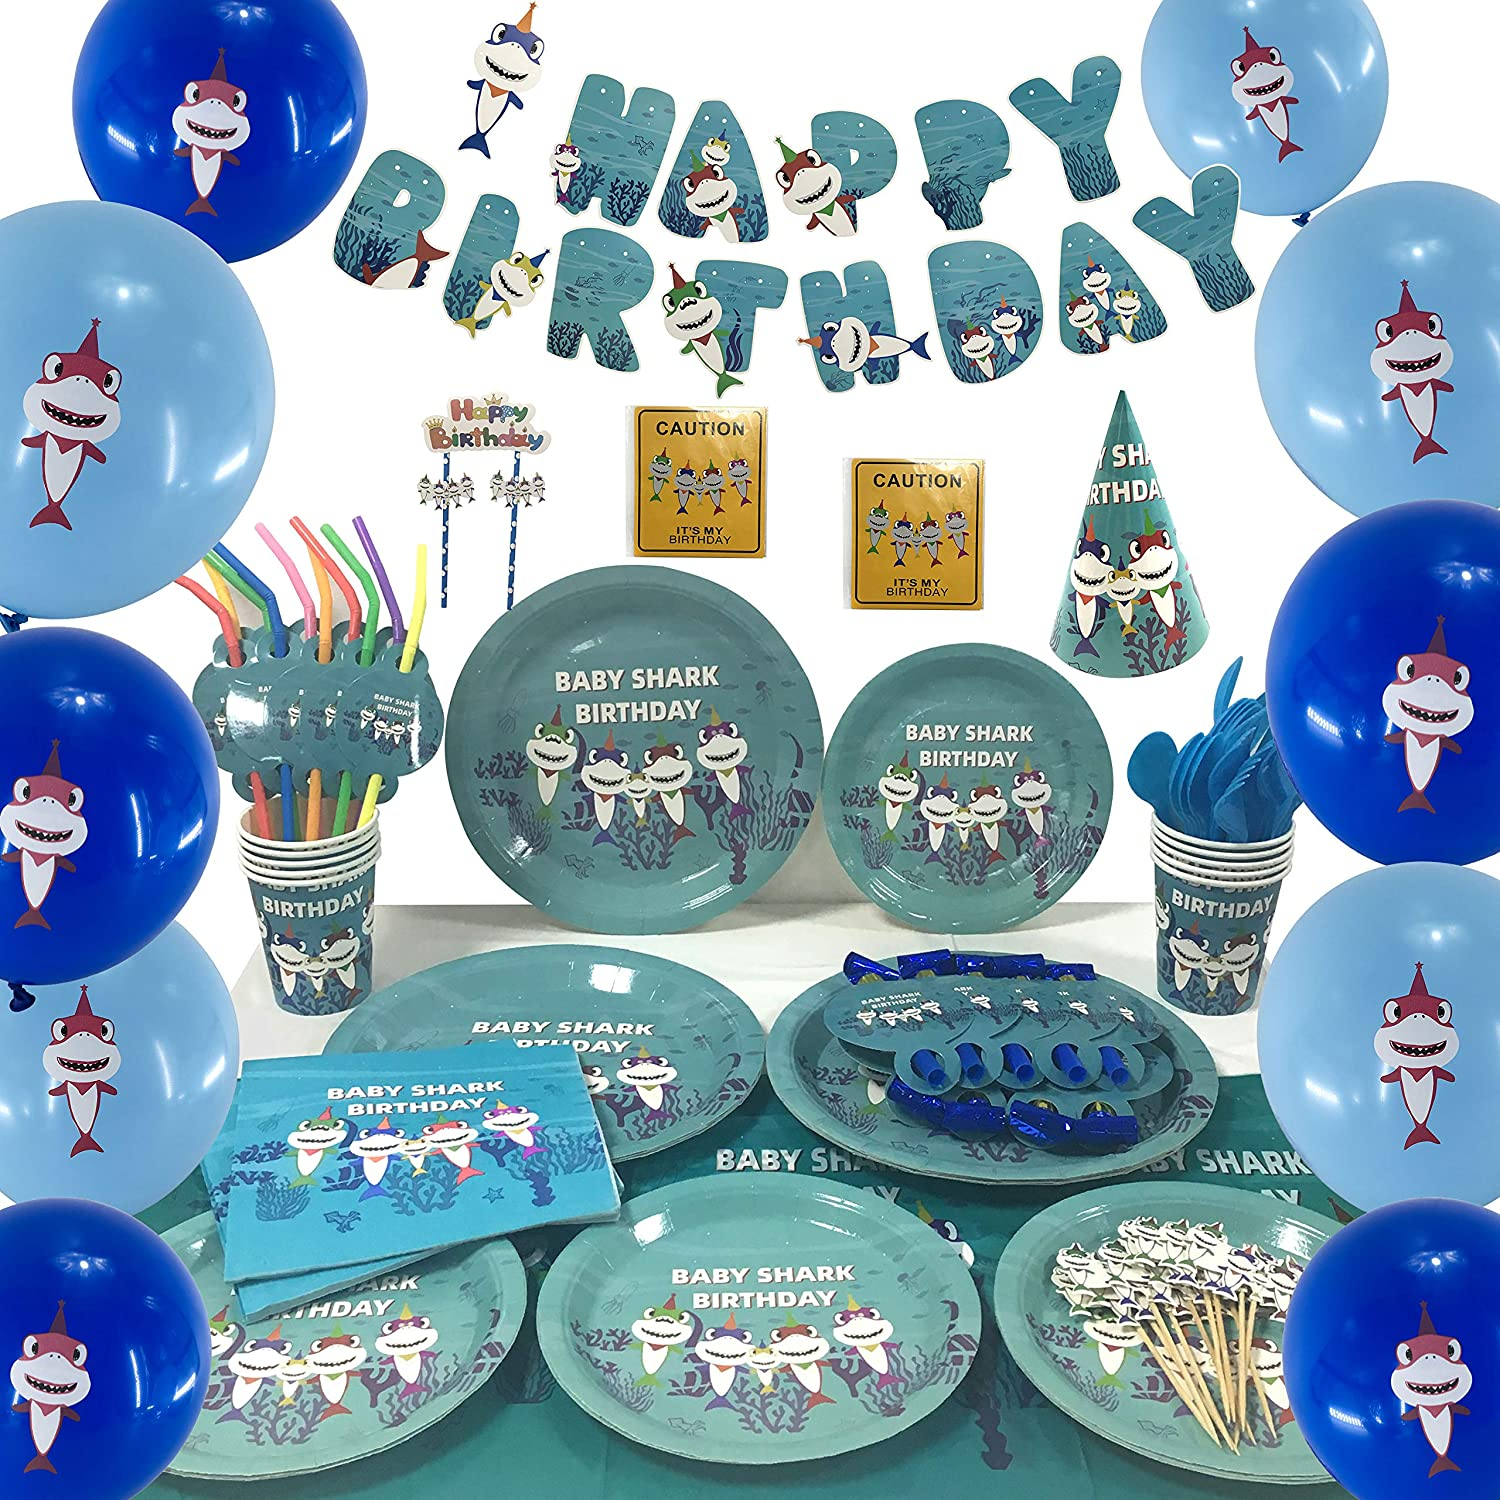 DBRANCO Baby Shark Party Supplies Set – Ocean Pool Party Decorations for Kids Birthday includes Plates Cups Straws Tablecloth Knives Spoons Forks Napkins Balloons Hats Blowouts Serves 10 Guests 140 PCS